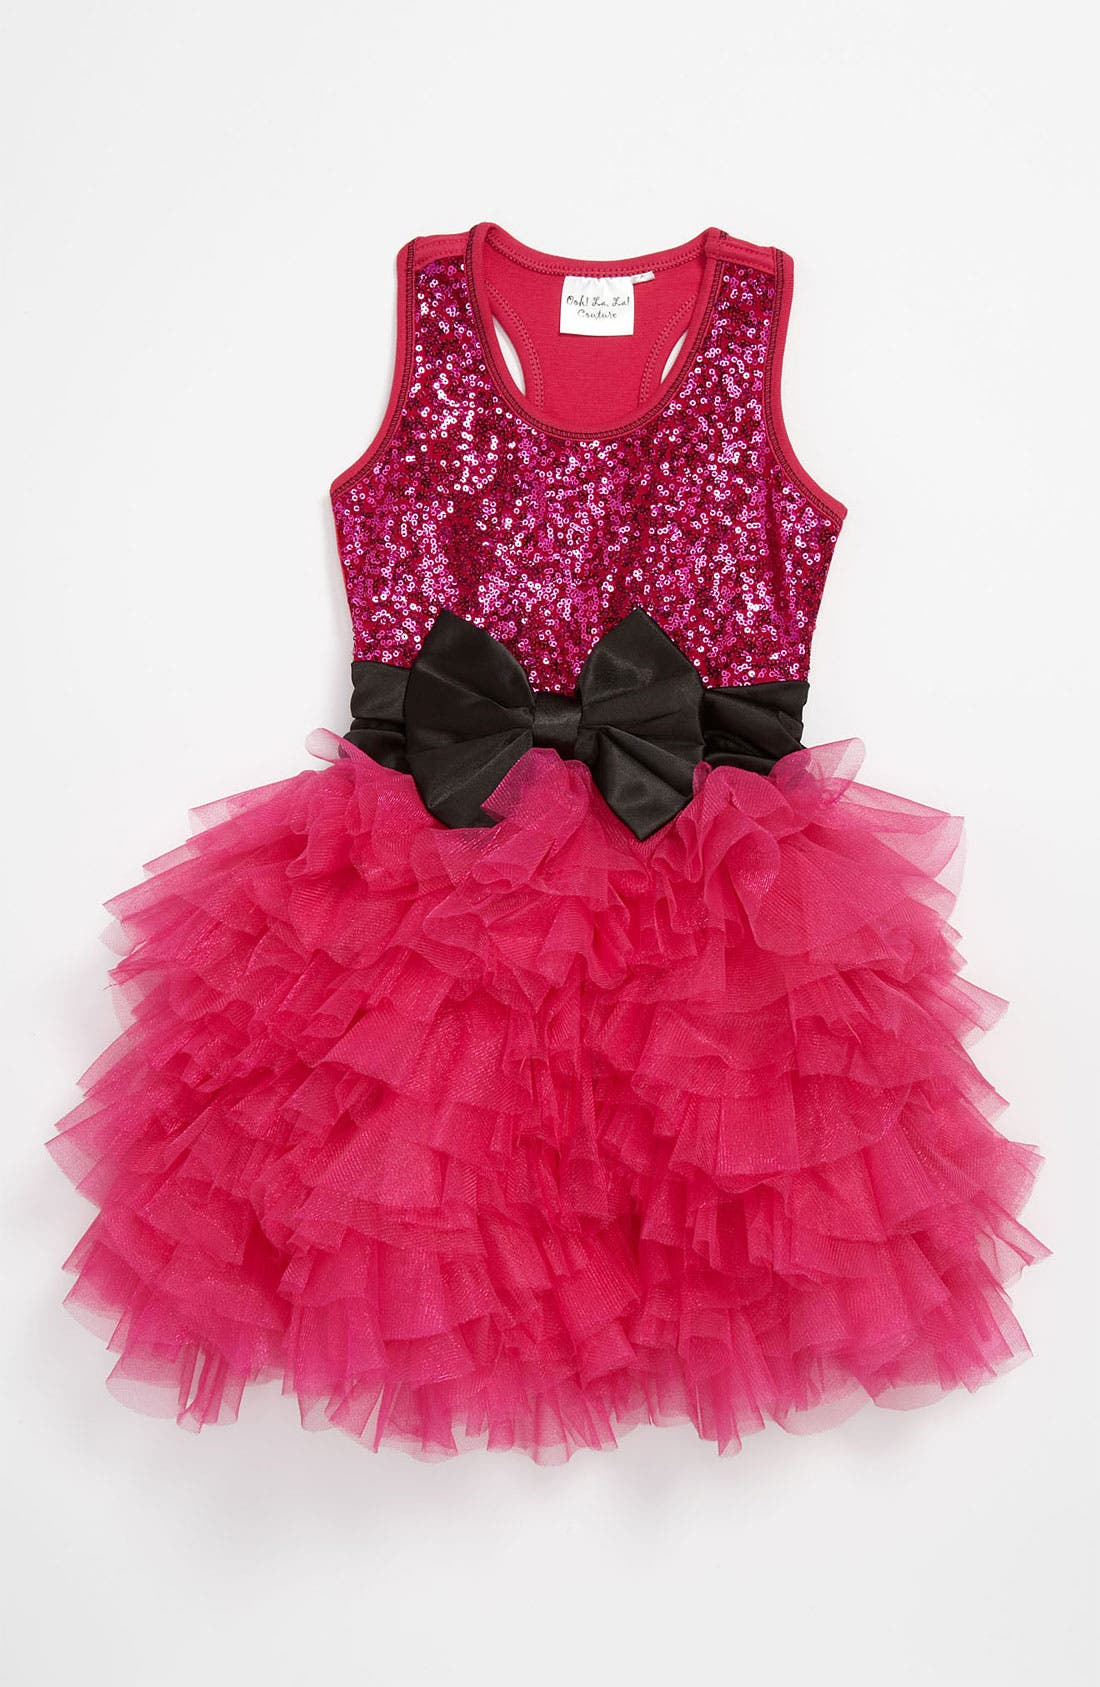 Main Image - Ooh! La, La! Couture 'Wow Dream' Dress (Little Girls & Big Girls)